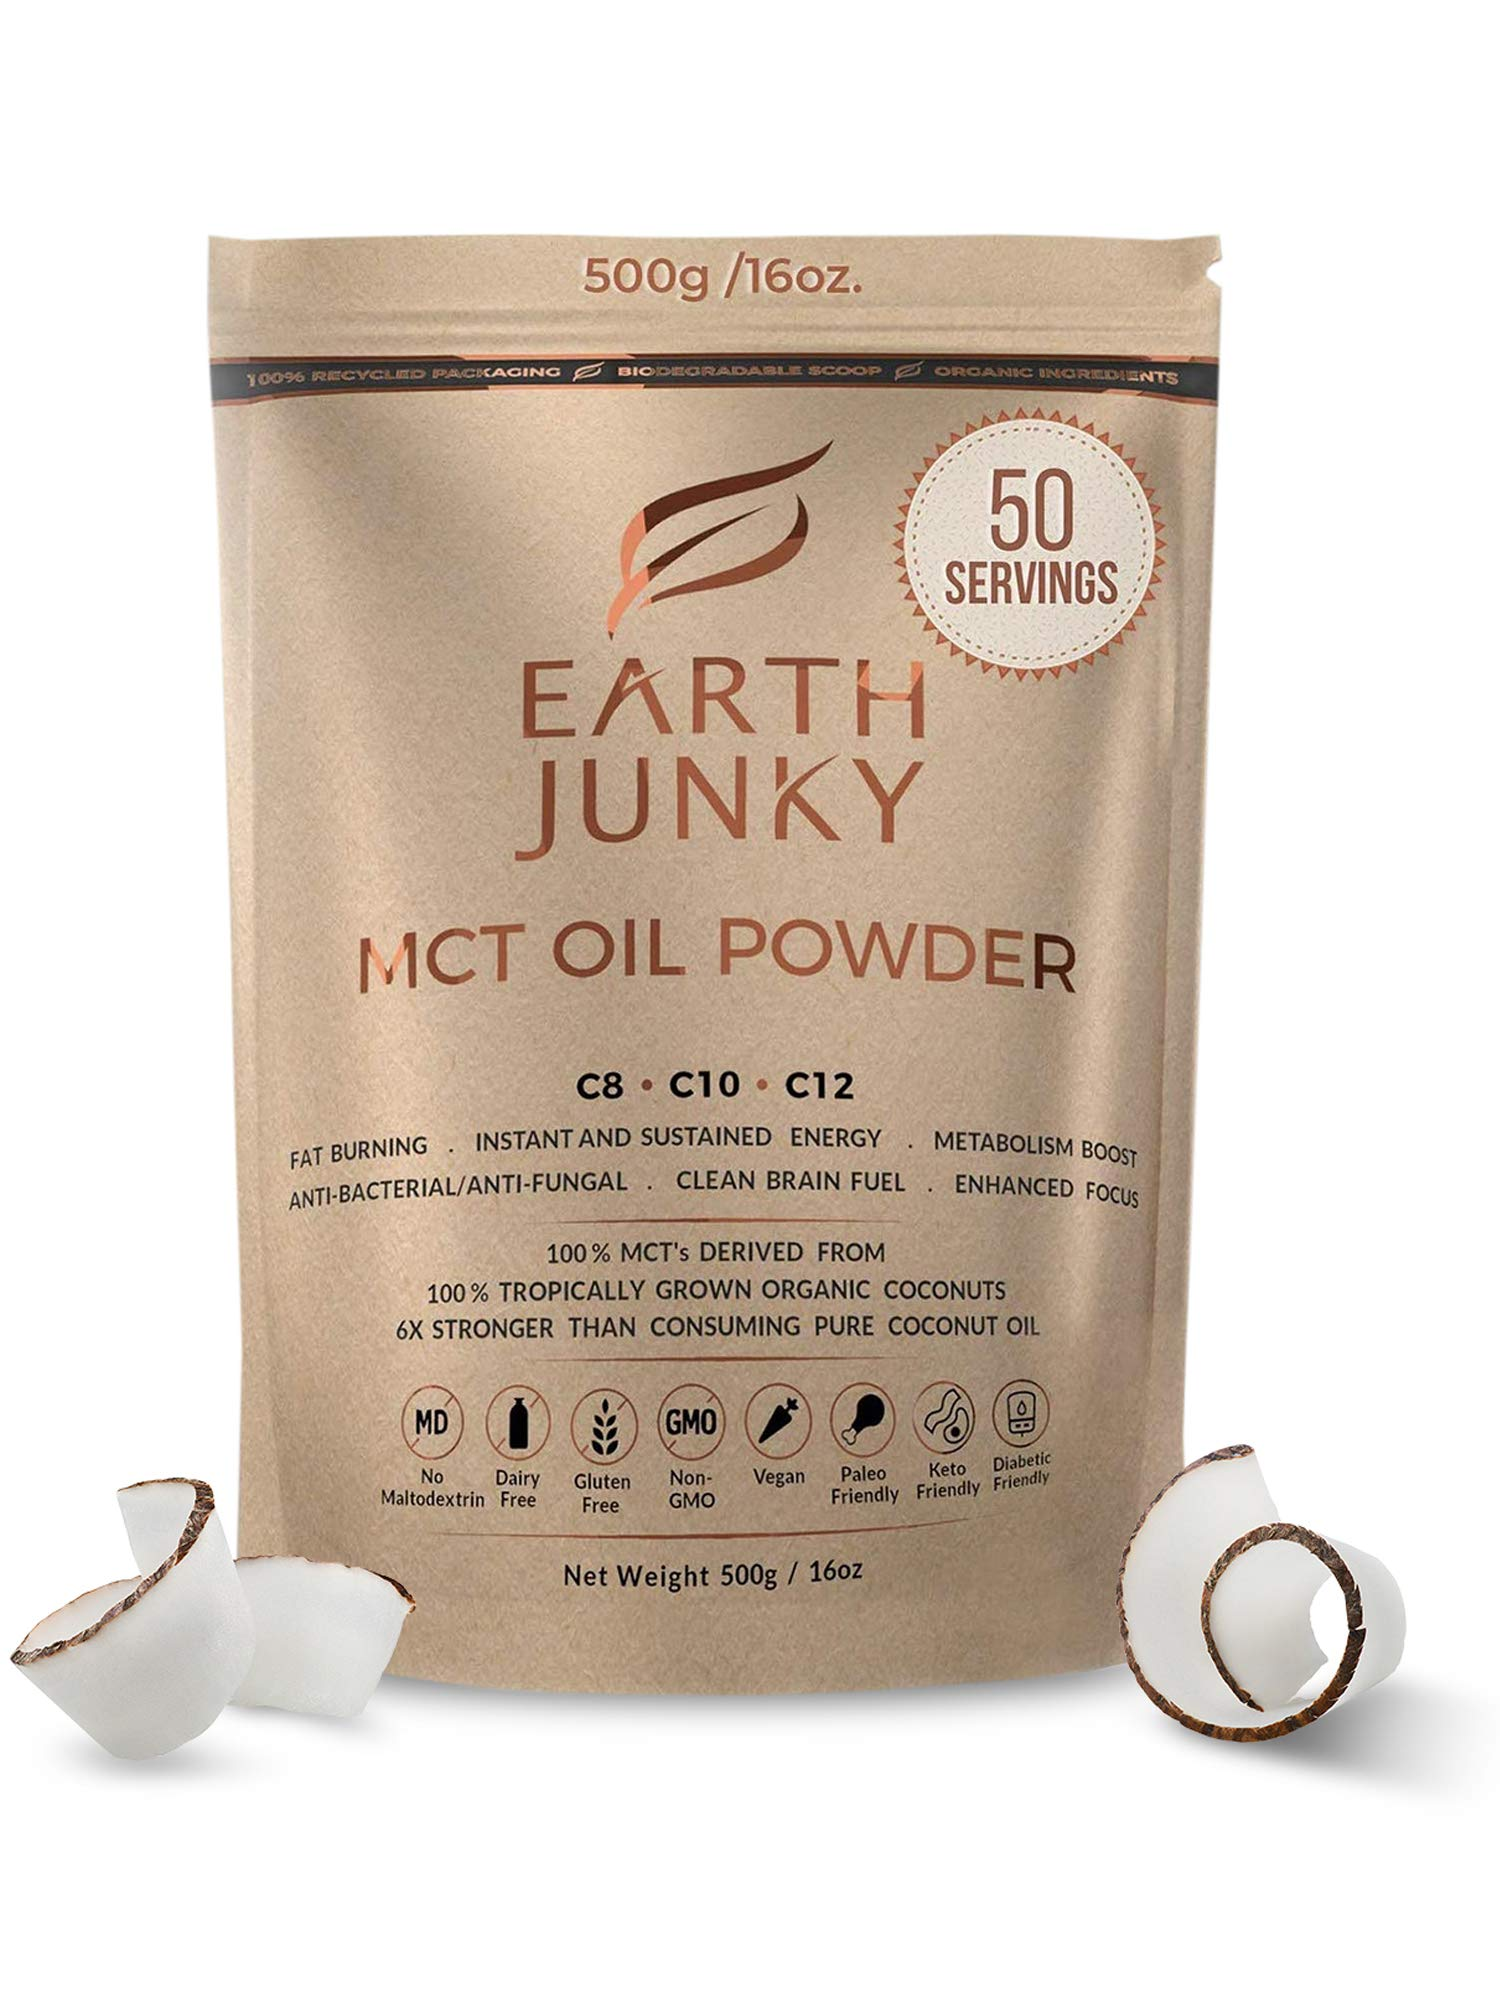 Organic MCT Oil Powder Unflavored - Clean Keto MCT Powder - MCT Powder Creamer for Coffee - 100% Natural Brain Fuel and Instant Energy Boost - Improved Digestion, MCT c8 c10 c12-50 Servings - 16oz